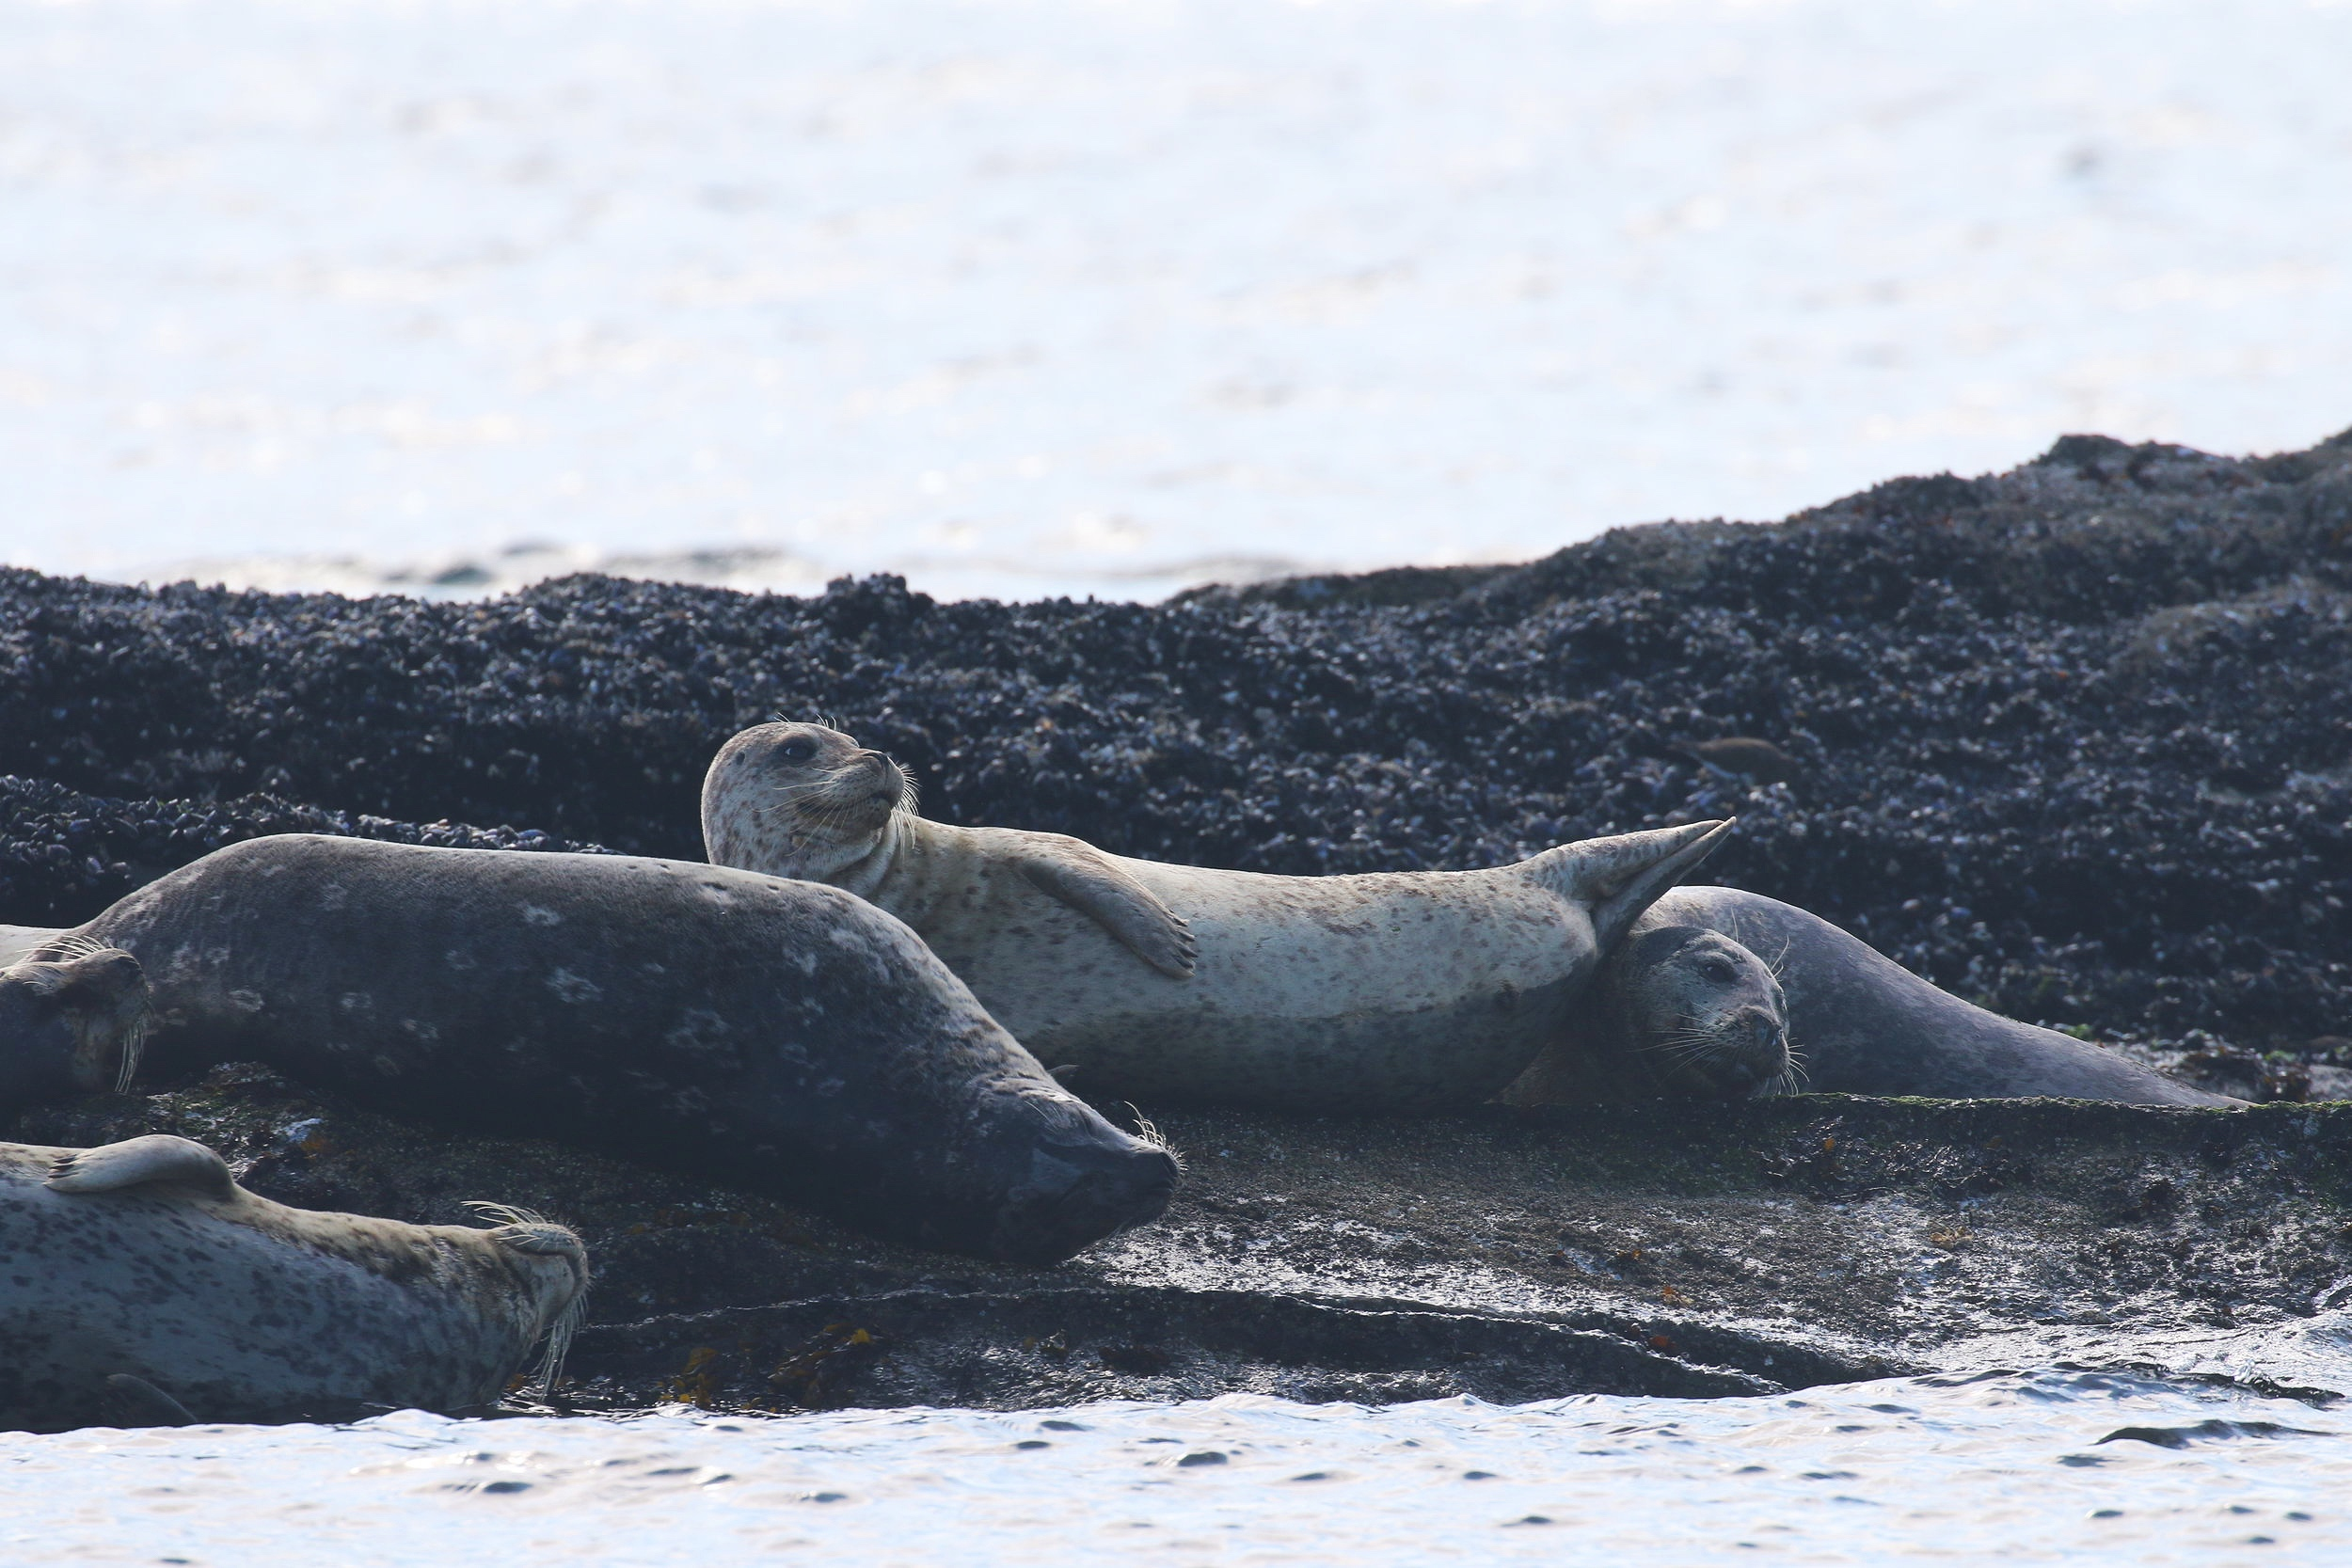 Our friendly neighbourhood Rock Sausages AKA Harbour Seals laying on the rocks. Photo by Rebeka Pirker (3:30).